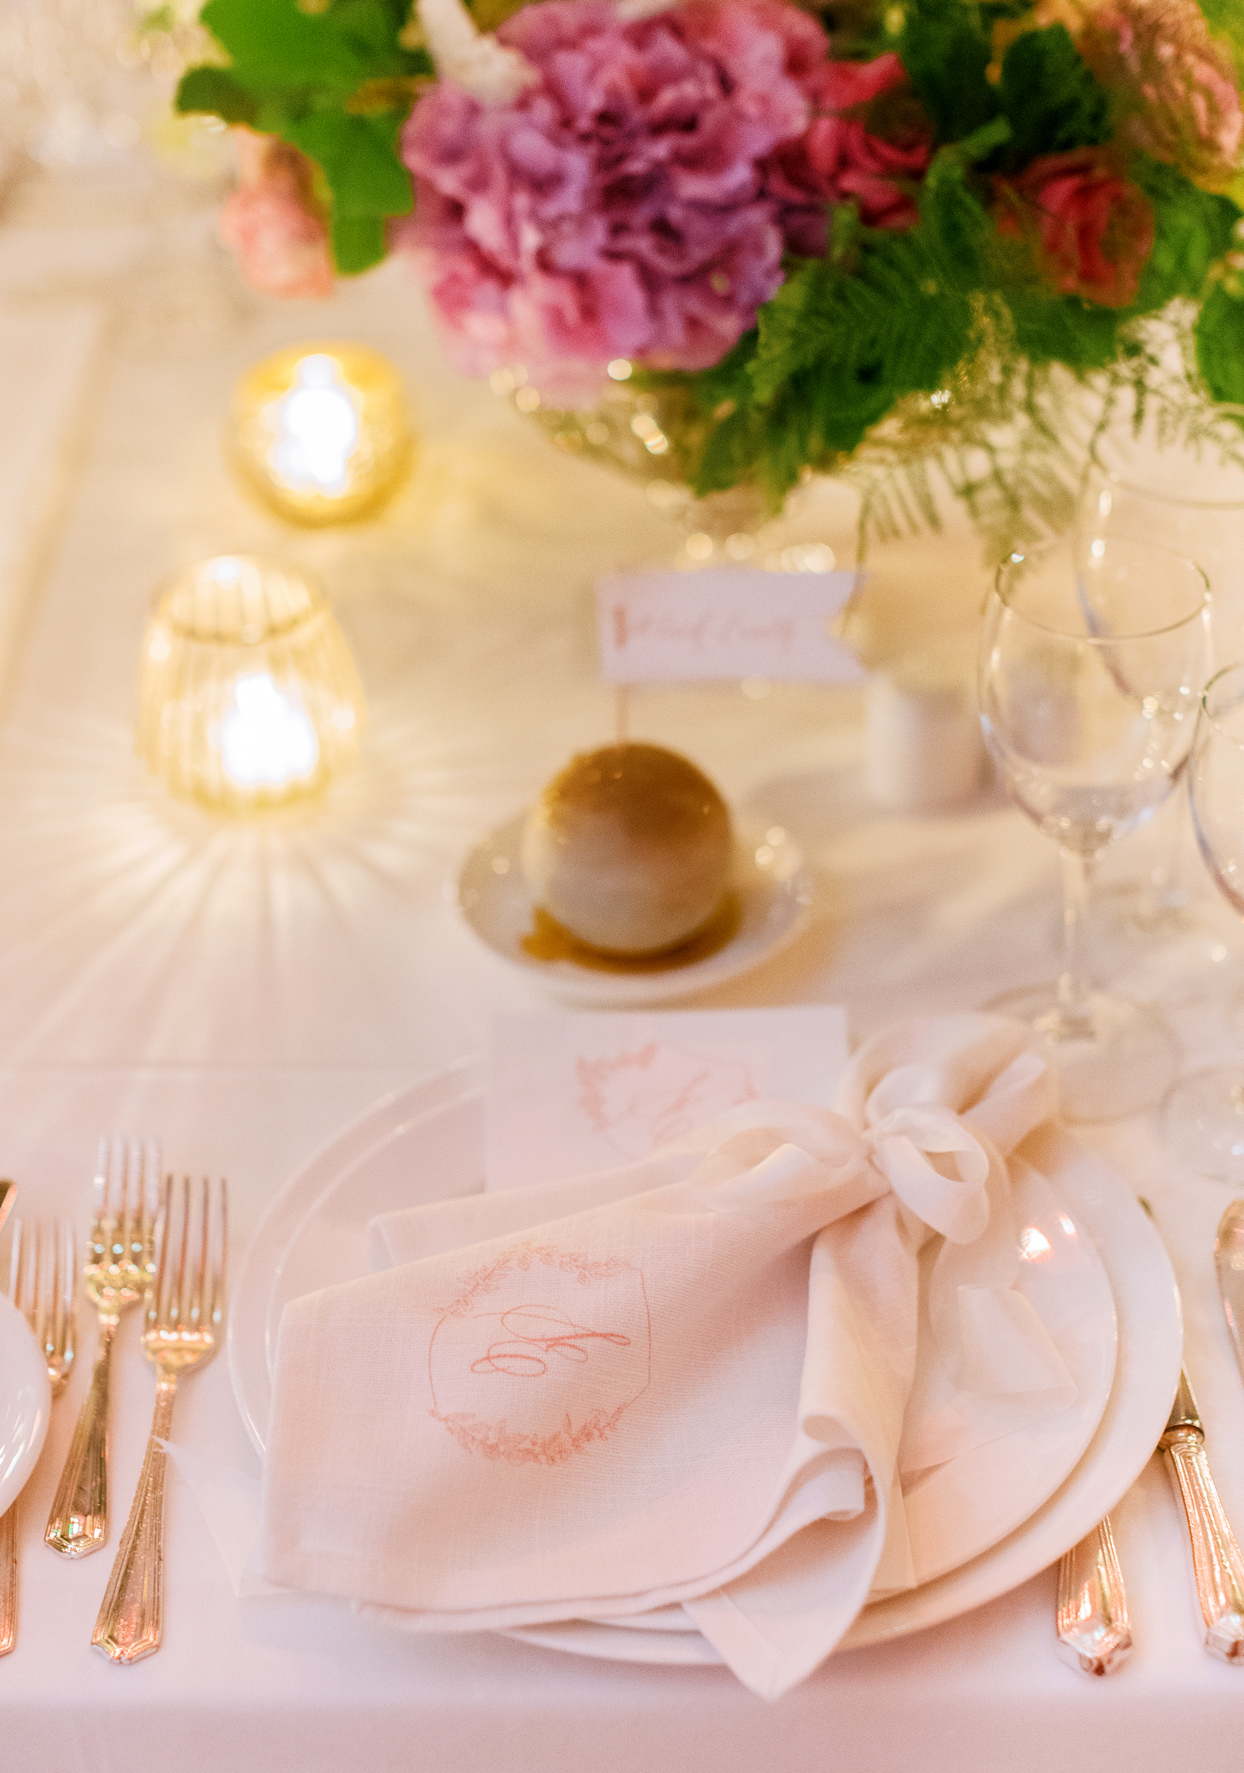 monogrammed hemstitch napkin topped placesetting